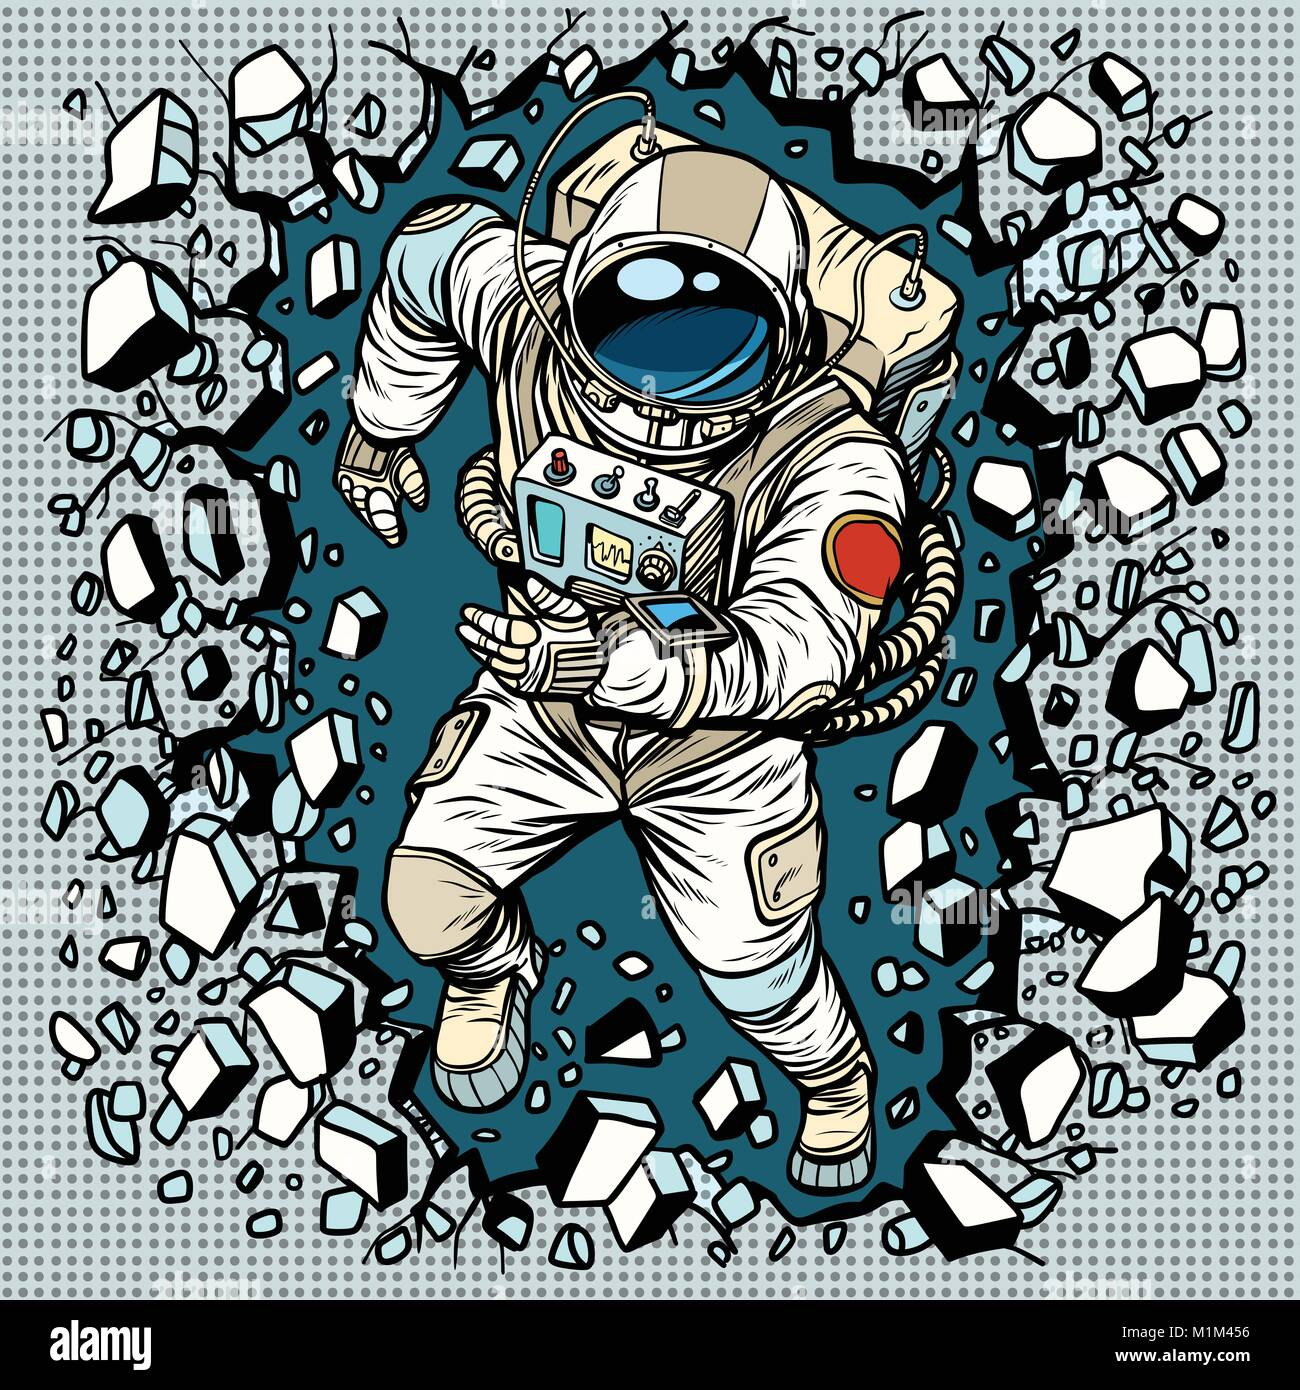 Astronaut breaks the wall, leadership and determination - Stock Vector